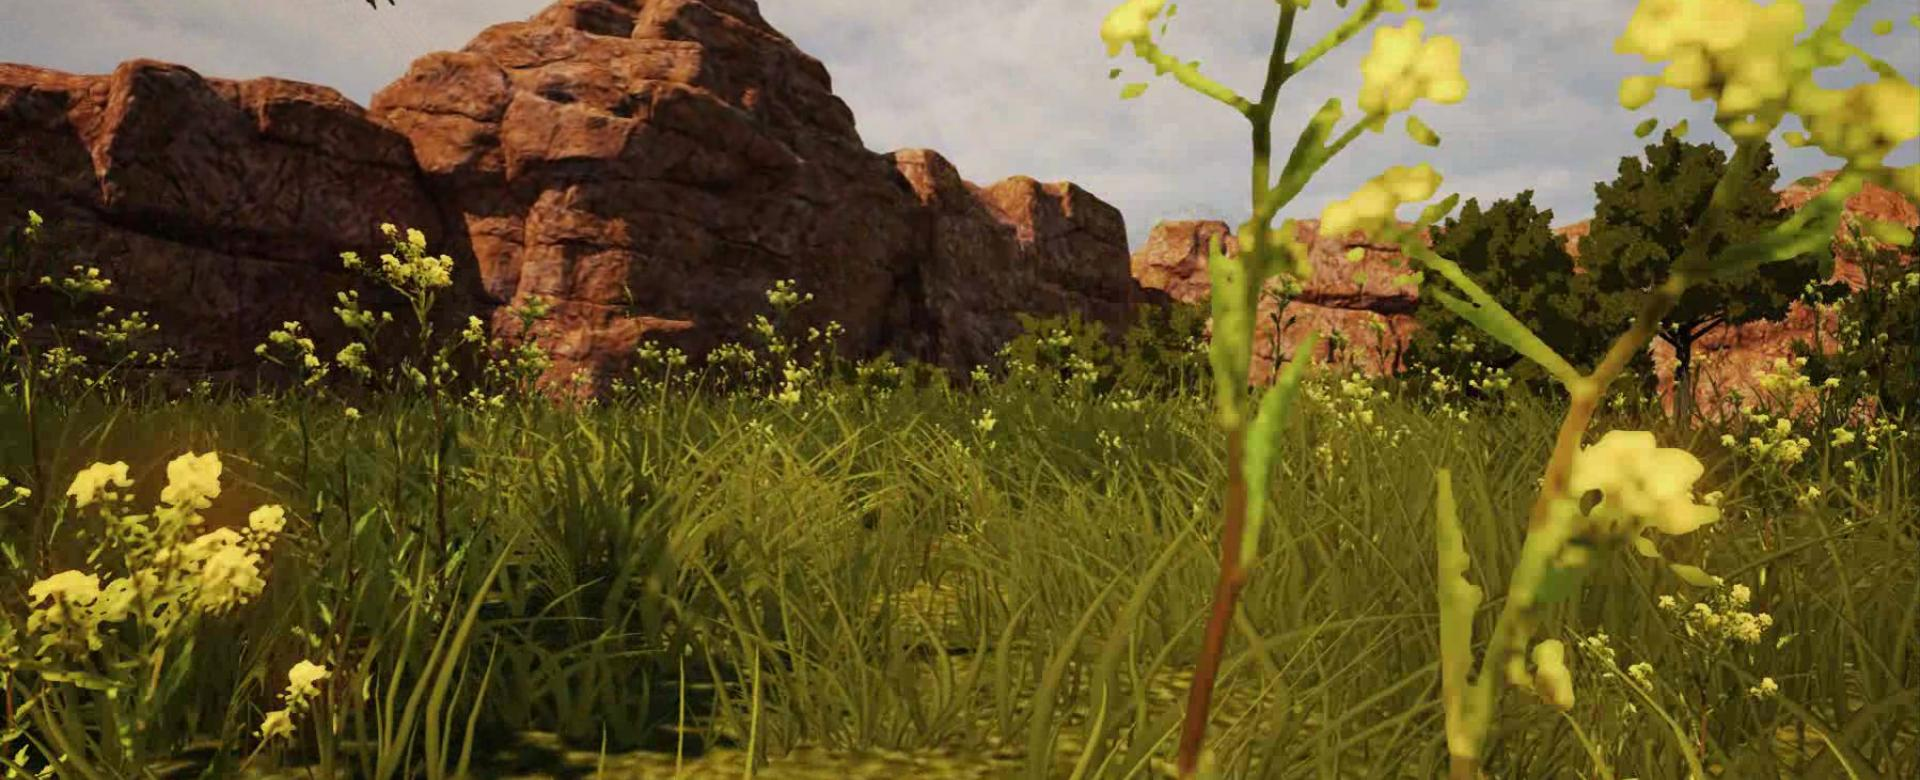 3D in Games - Аn epic tale of a new world